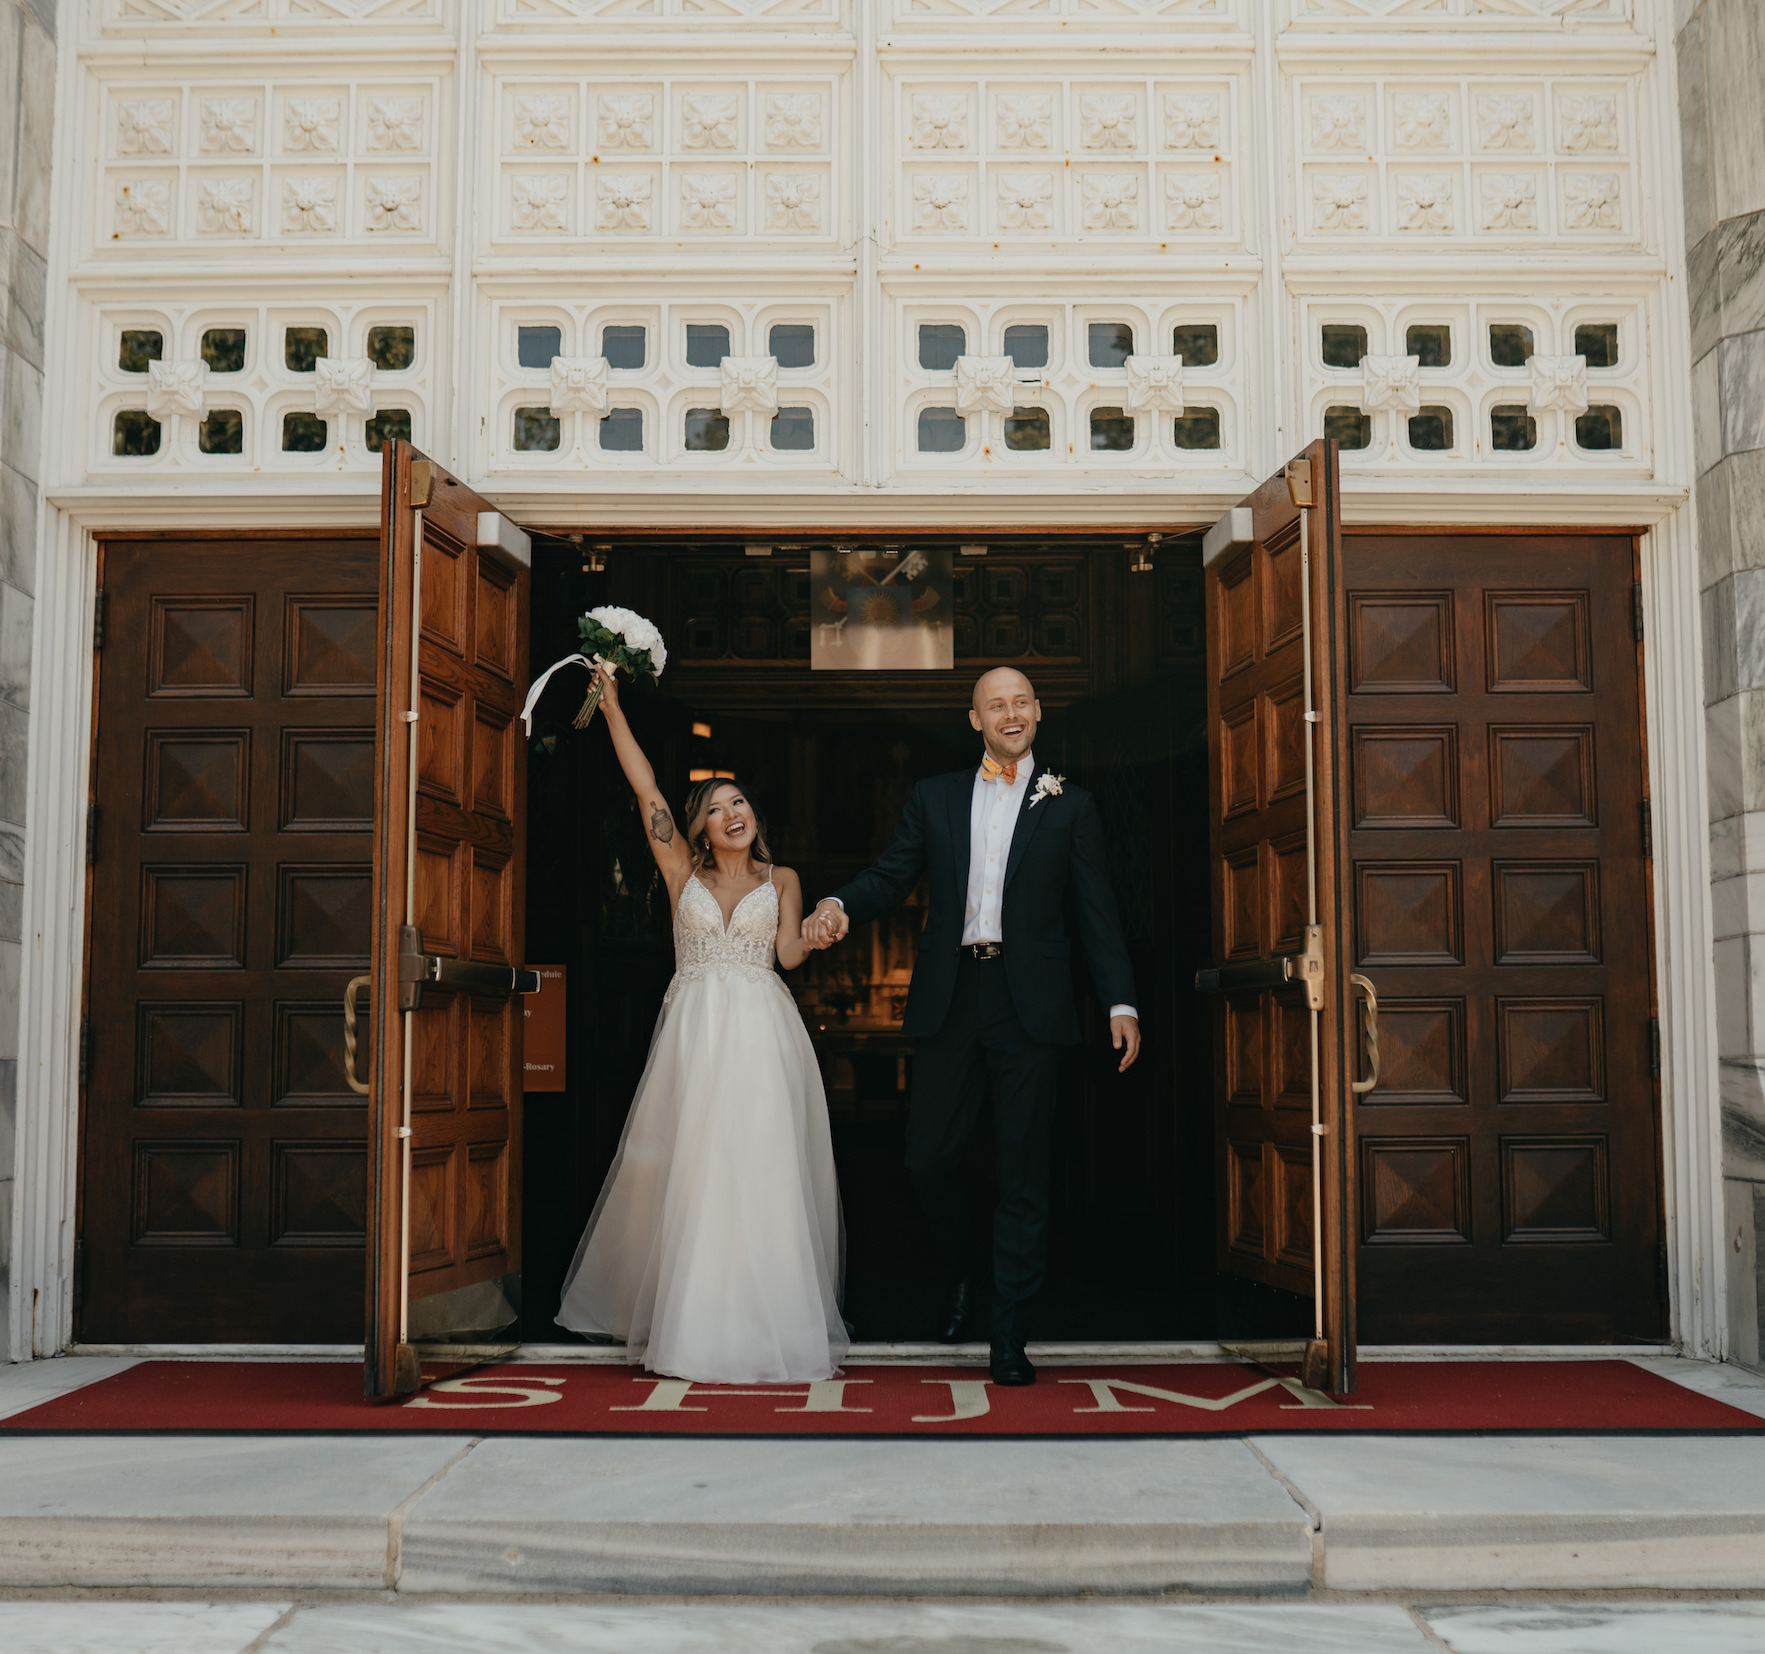 Bride and groom leaving ceremony as newlyweds